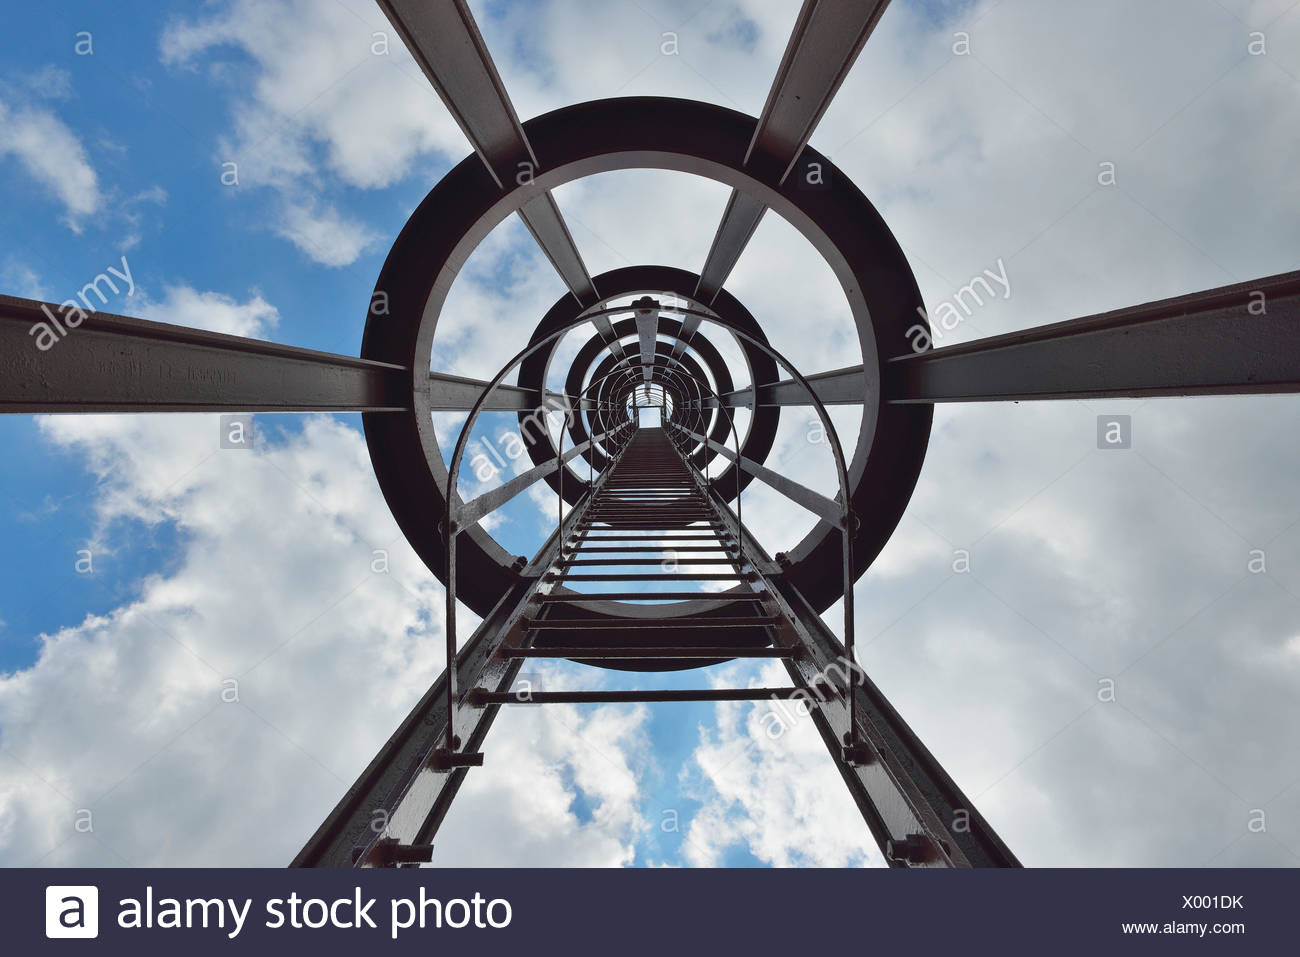 Tower, Zeche Zollverein, Essen, Ruhr Basin, North Rhine-Westphalia, Germany - Stock Image